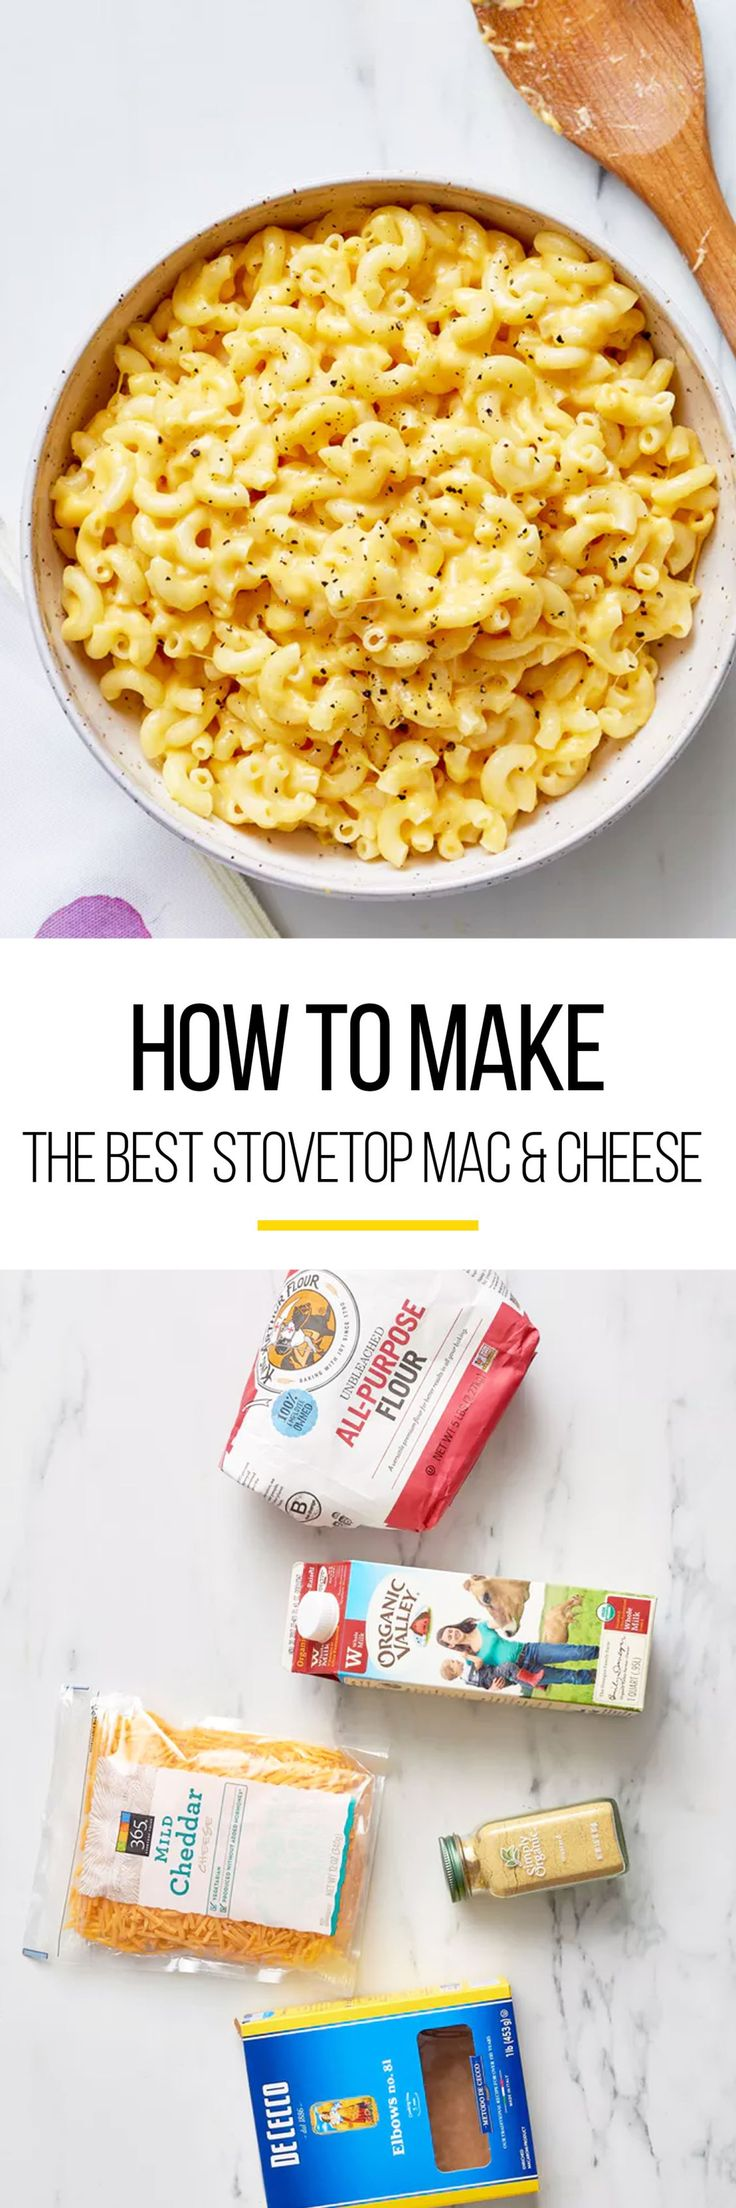 What cook doesn't go in search of the best macaroni and cheese recipe on the internet? Well, to keep it simple, this pasta recipe shows you how to make the best mac and cheese on the stovetop. This recipe is east to do and its great for a weeknight dinner. You'll need dried short pasta, whole or 2% milk, all-purpose flour, kosher salt, powdered mustard and shredded cheese, such as cheddar, Monterey Jack, or Colby.